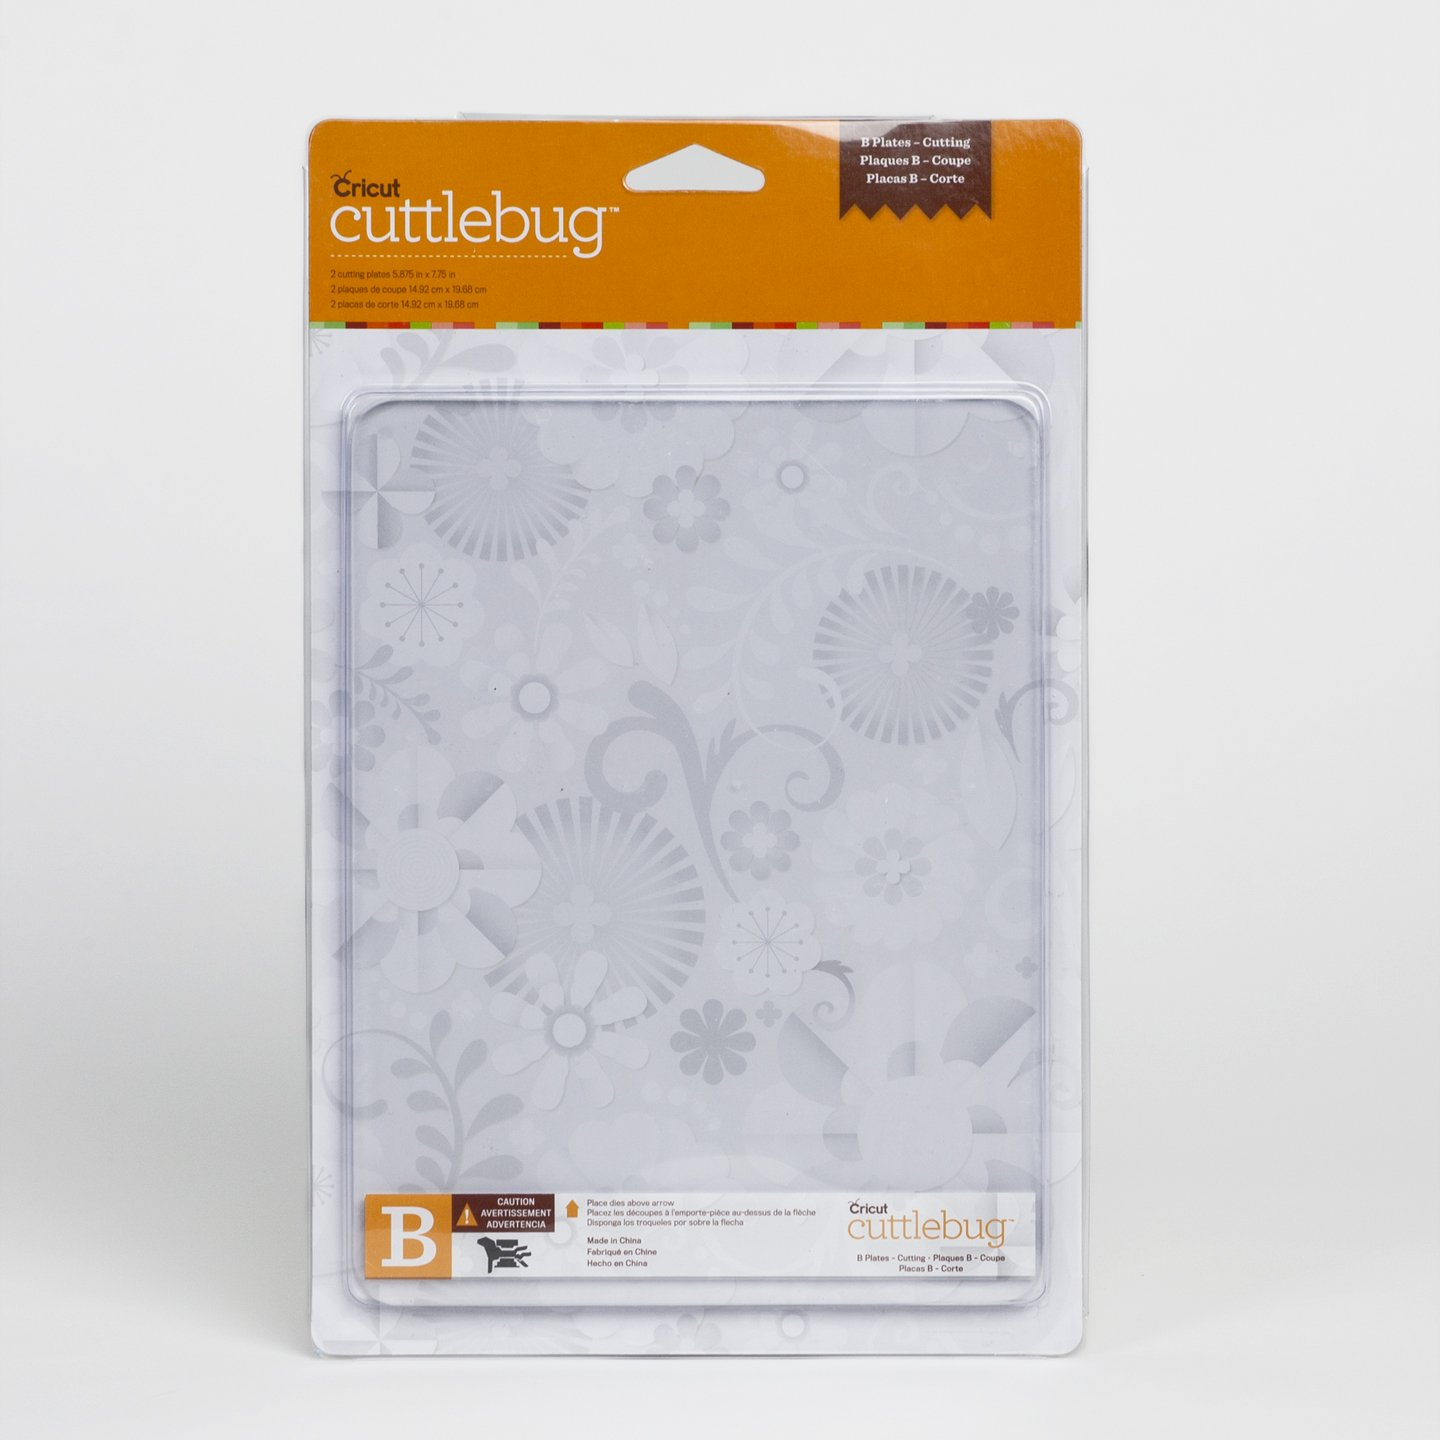 Provo Craft Cuttlebug Replacement Cutting Mat B, 2 Mats 37-1258